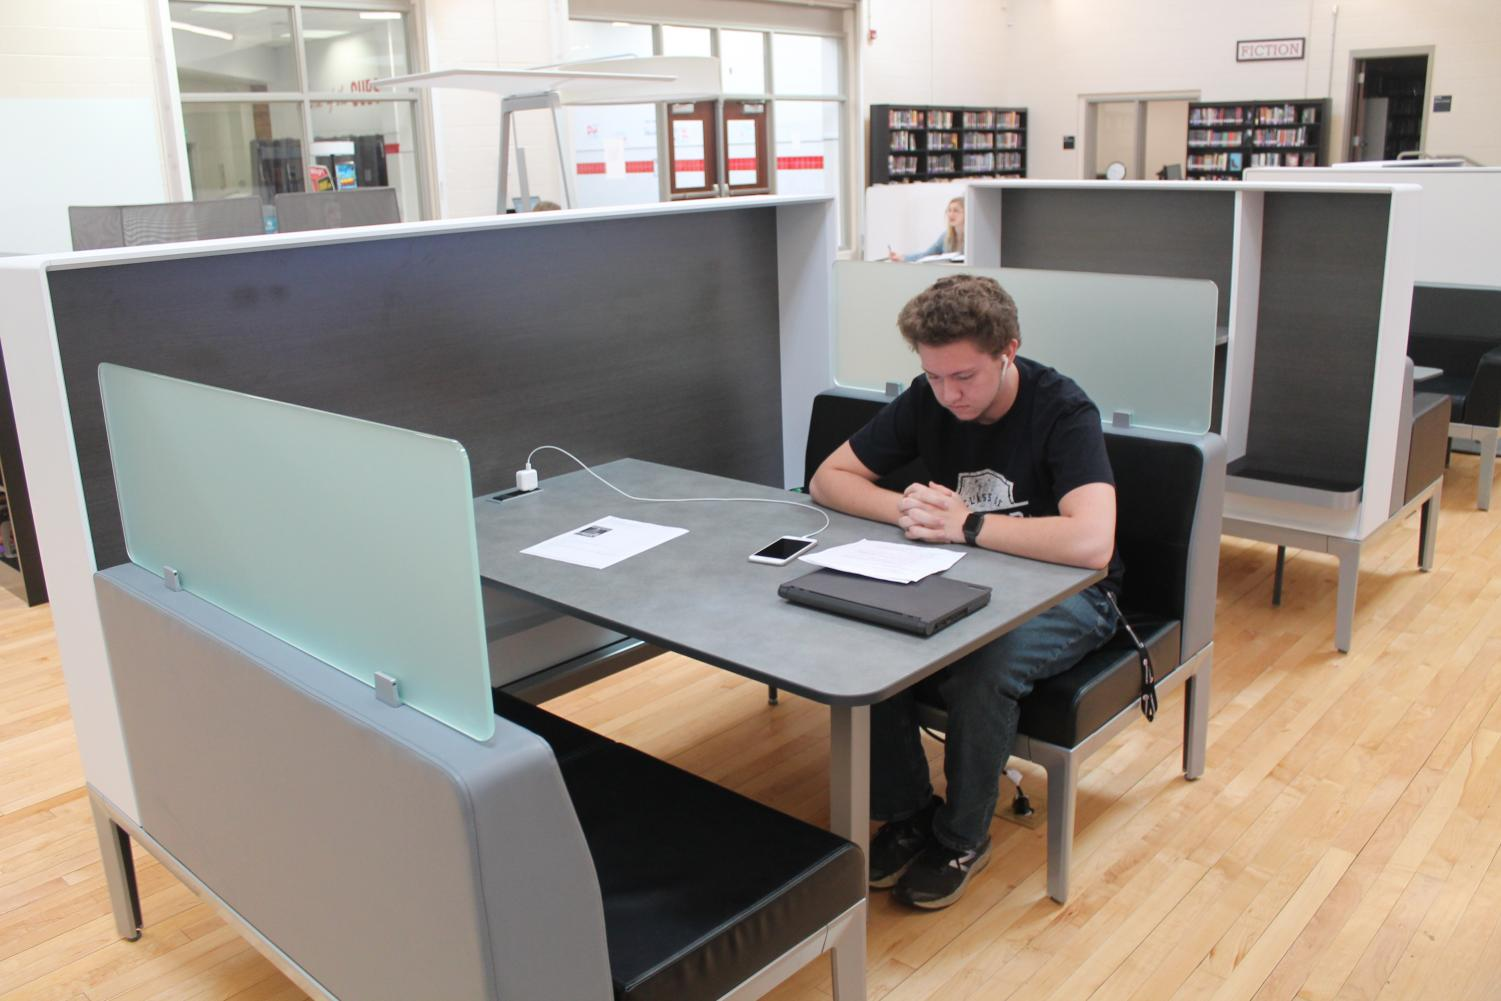 MCHS student Shannahan Gardner studies in the new Learning Commons.